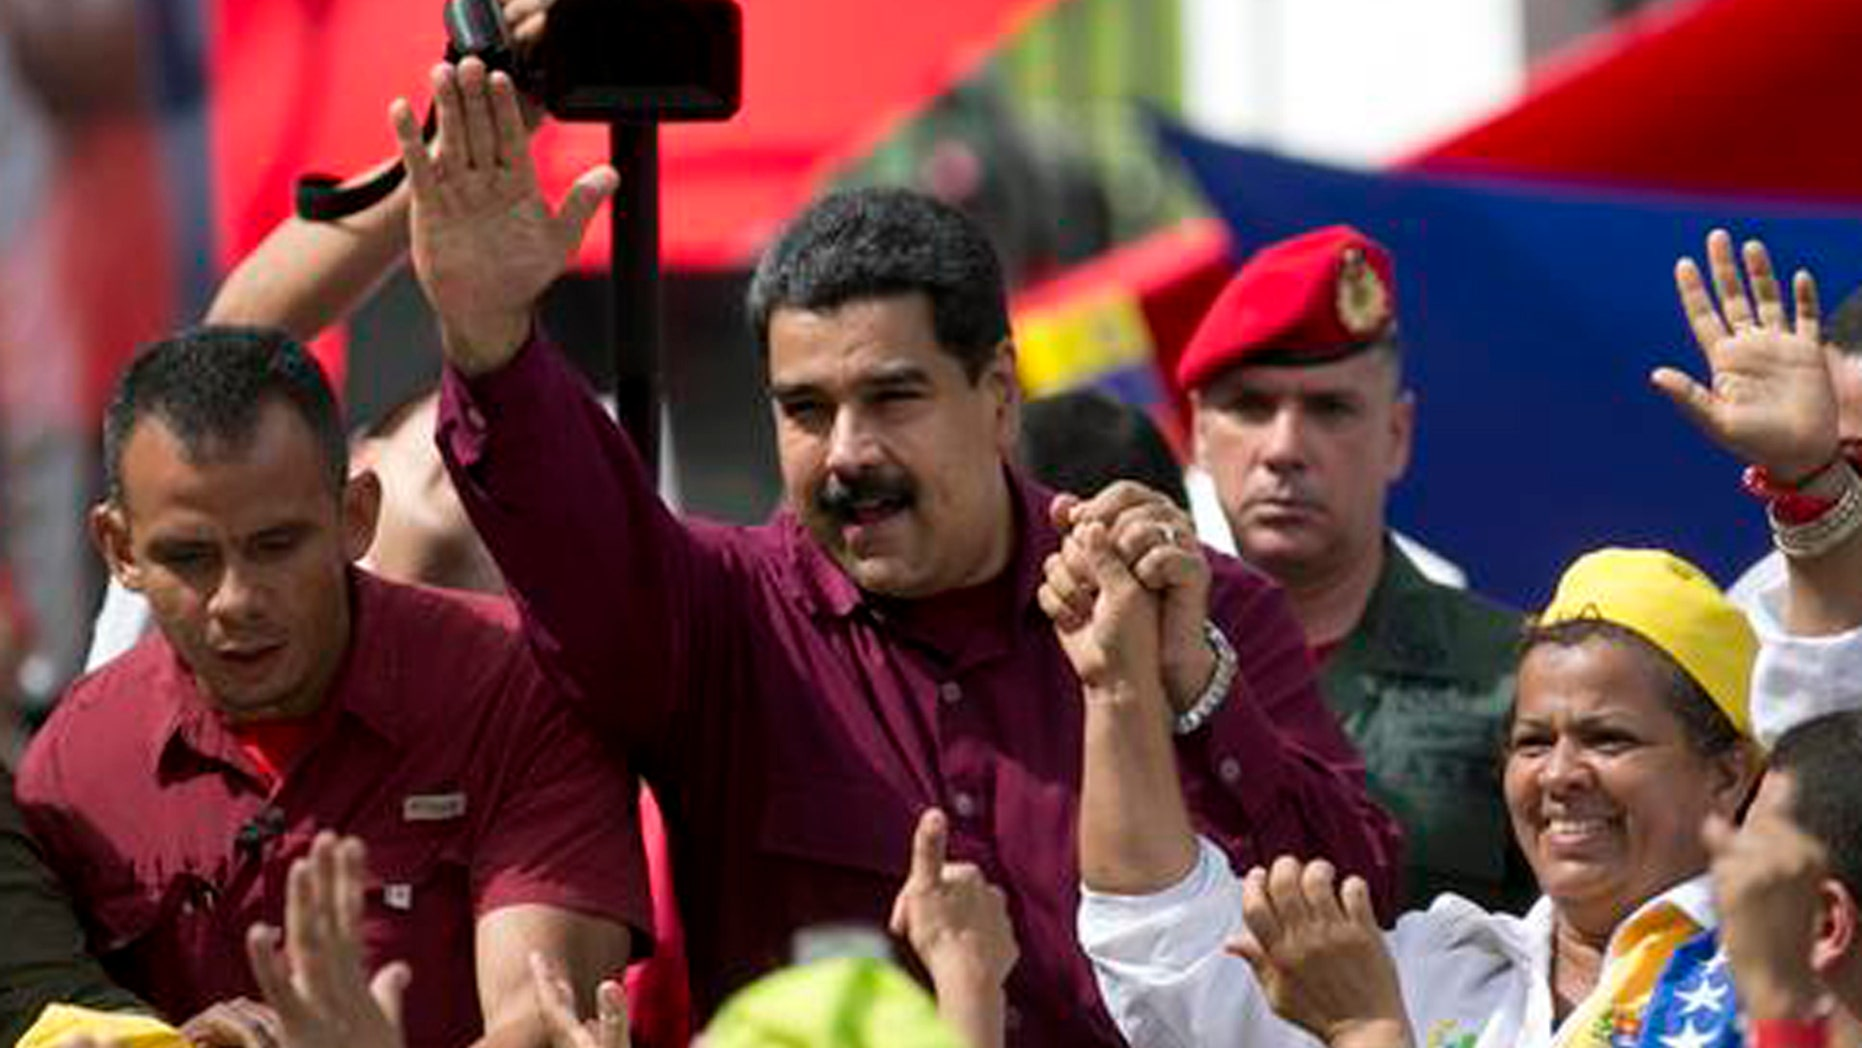 Venezuela's President Nicolas Maduro waves to supporters during a rally outside Miraflores presidential palace in Caracas, Venezuela, Friday, Oct. 28, 2016.